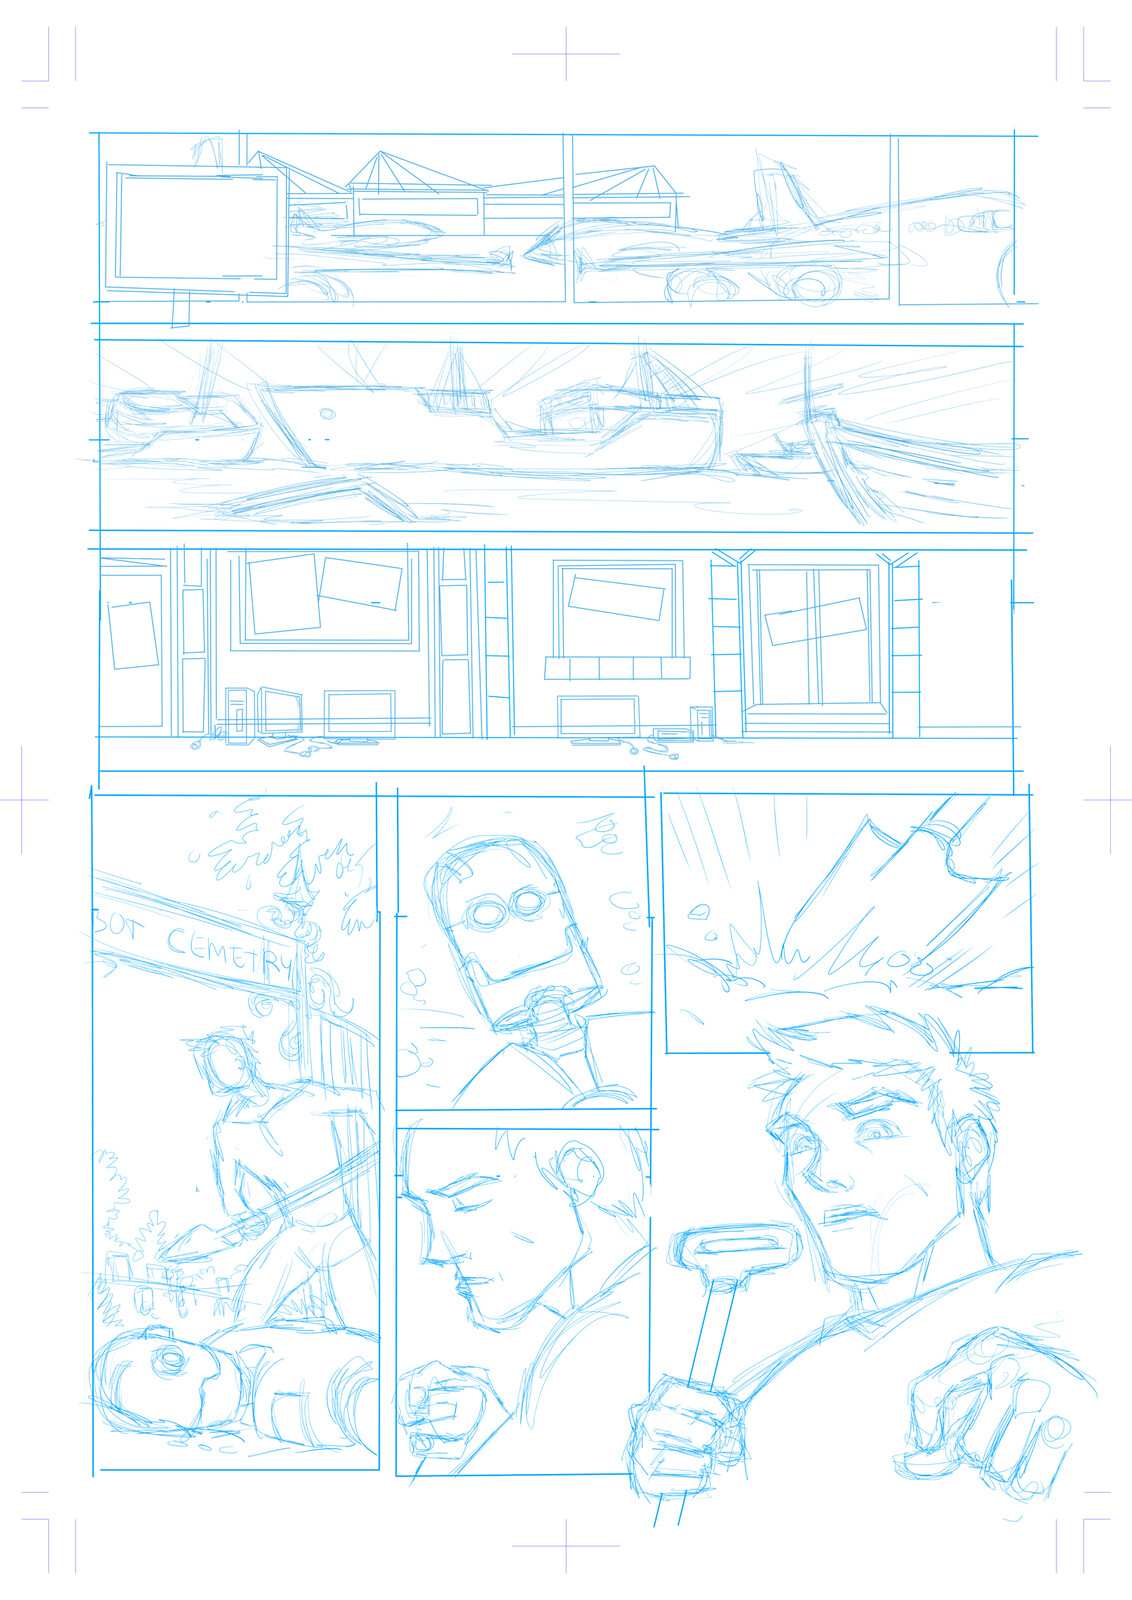 Initial layouts